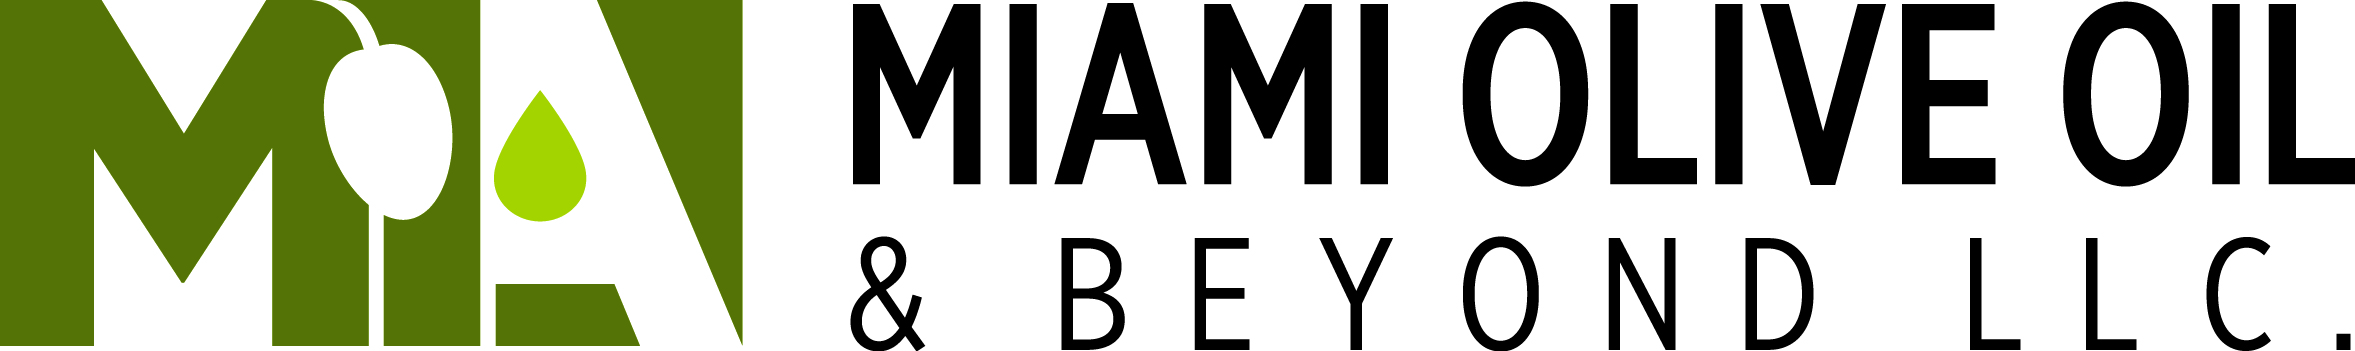 Miami Olive Oil & Beyond LLC, a Doral Chamber of Commerce member.